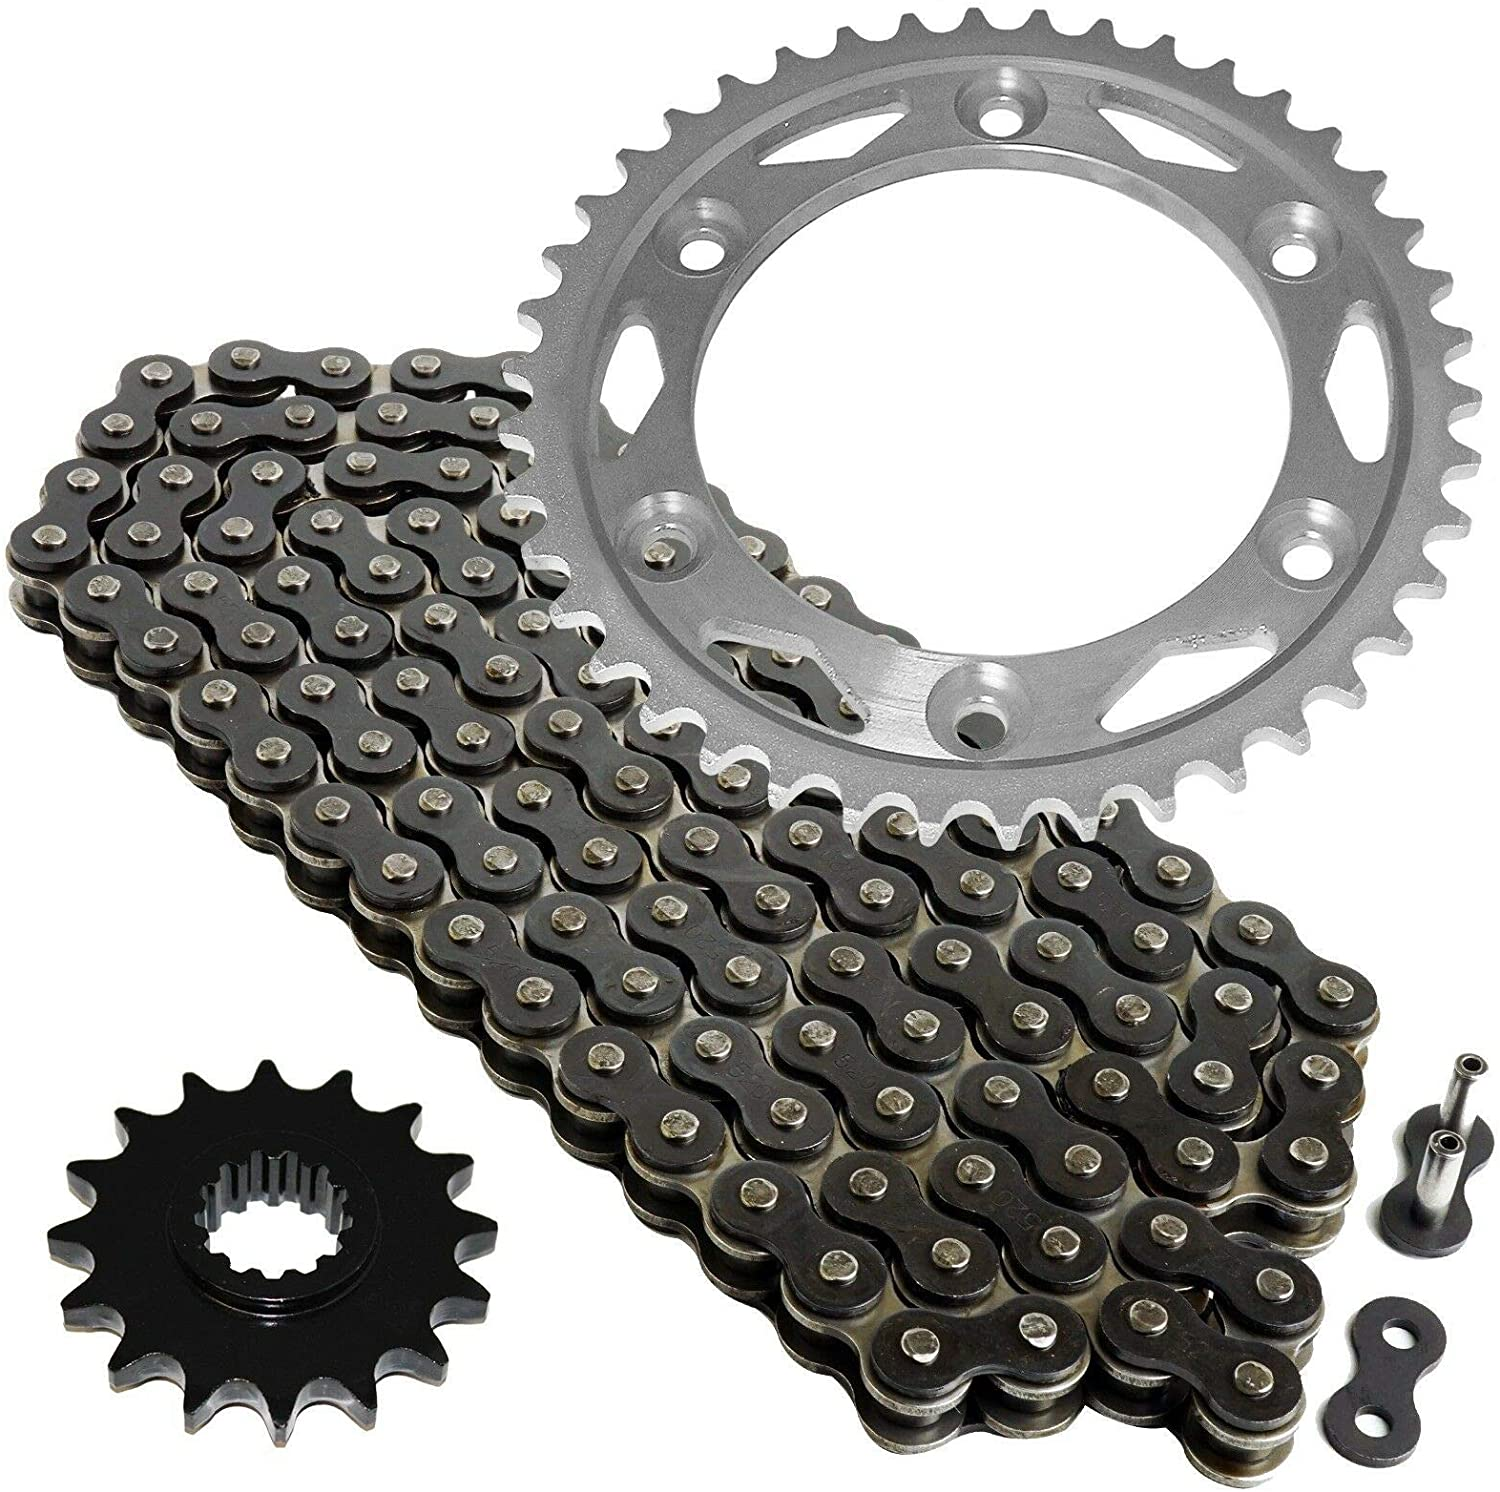 Caltric Black Drive Chain And Sprocket Kit Compatible With Honda Cbr1000S 2004-2016 530-Chain